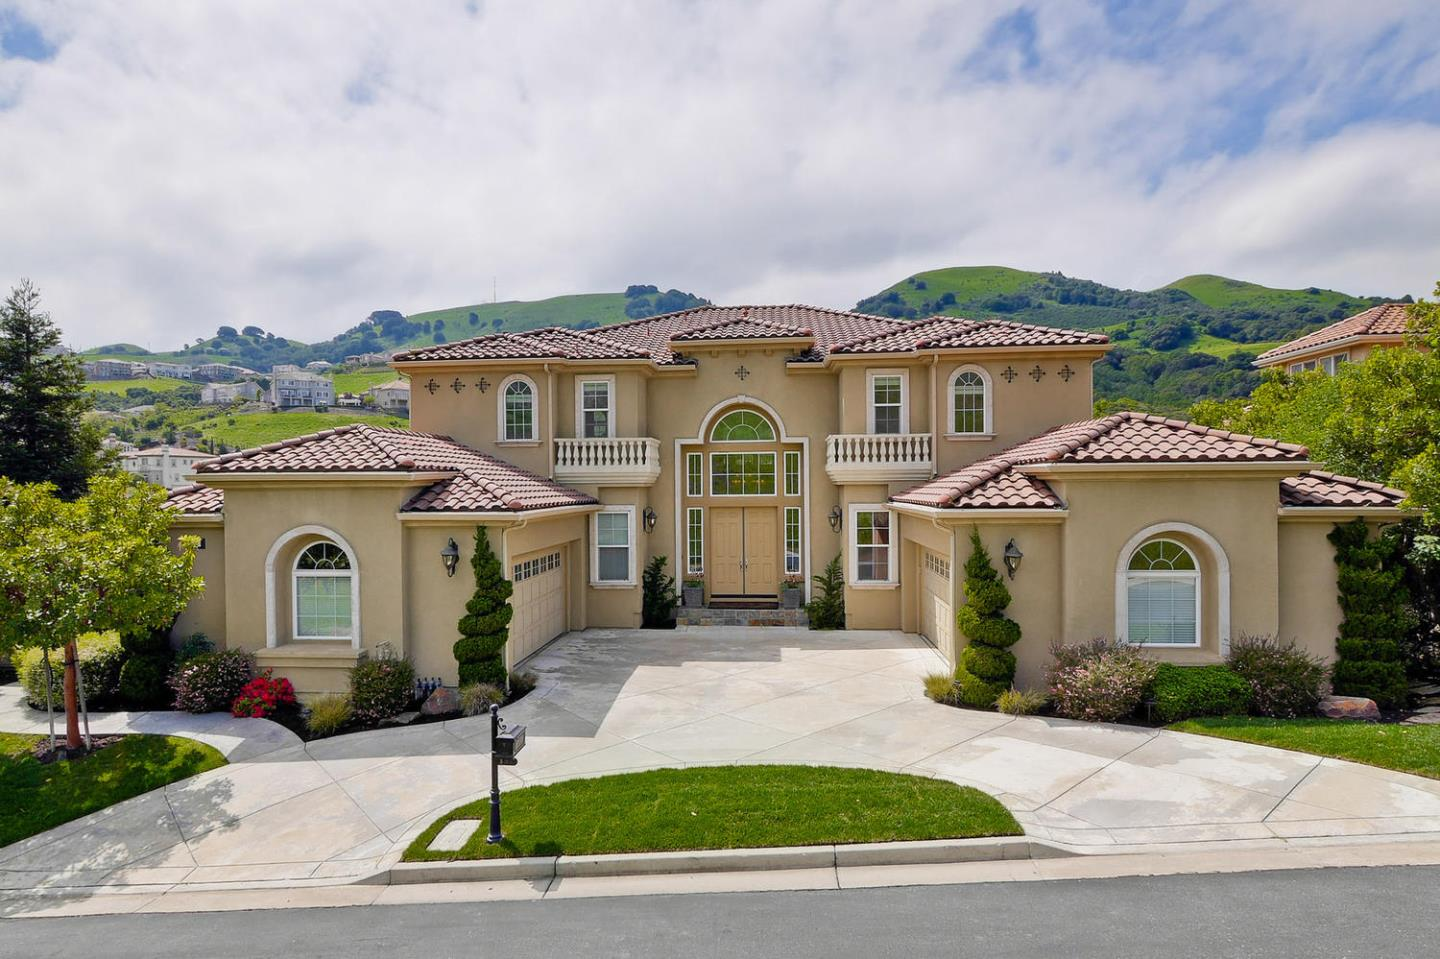 301 Whitcliff Court, SAN RAMON, CA 94583